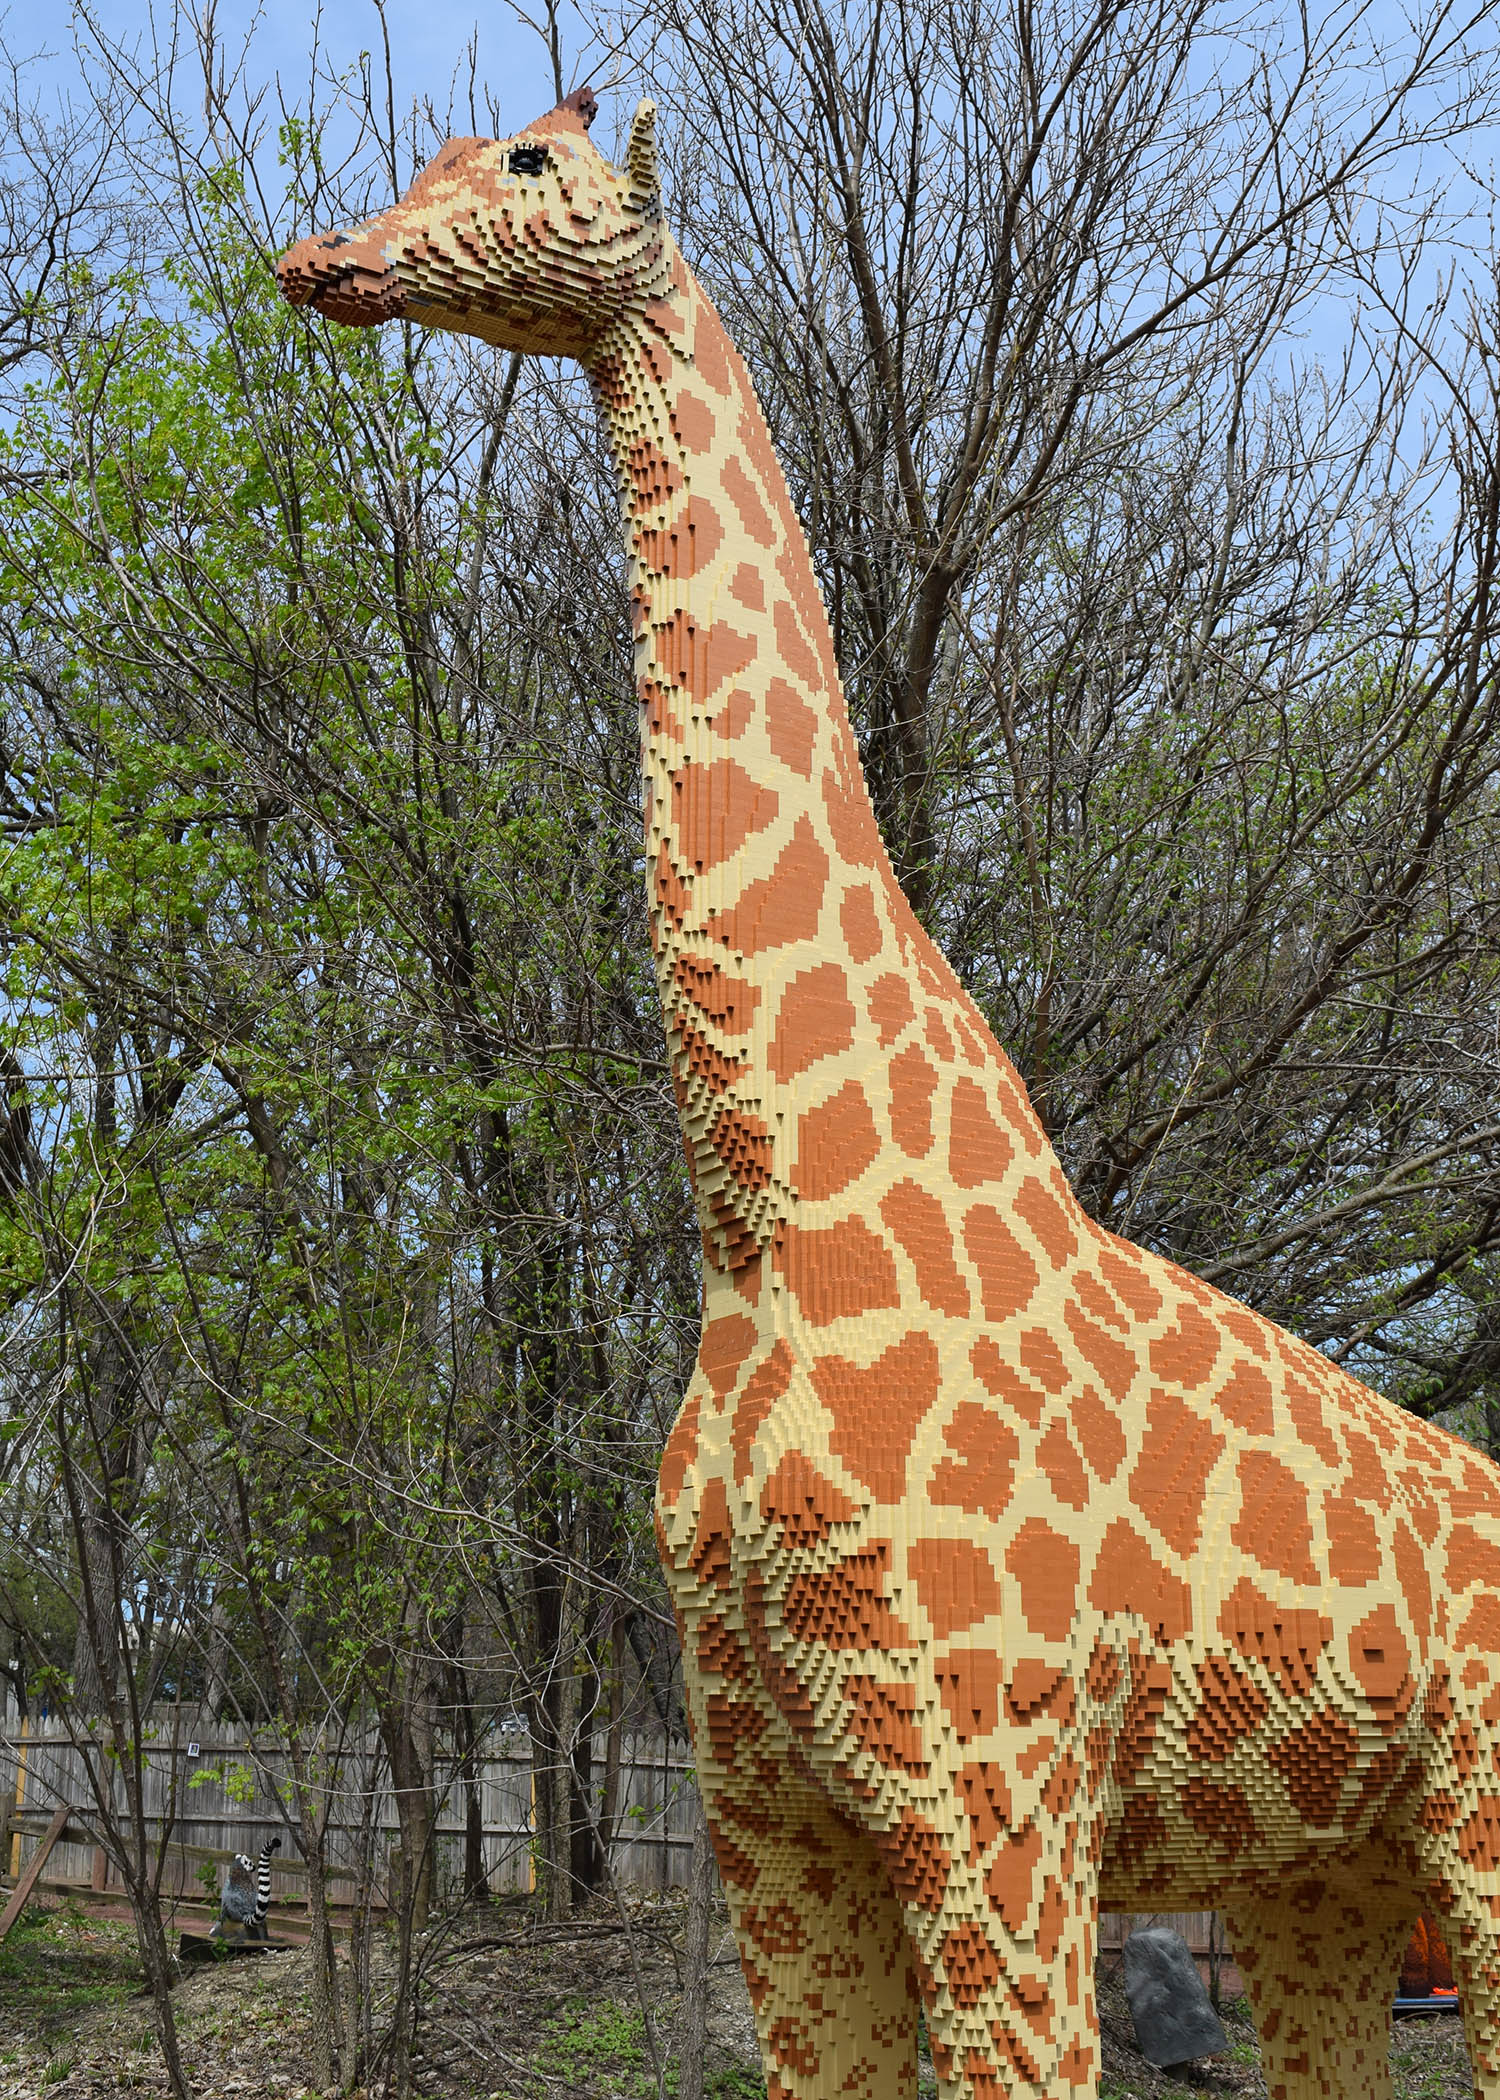 Brick-Safari-Giraffe